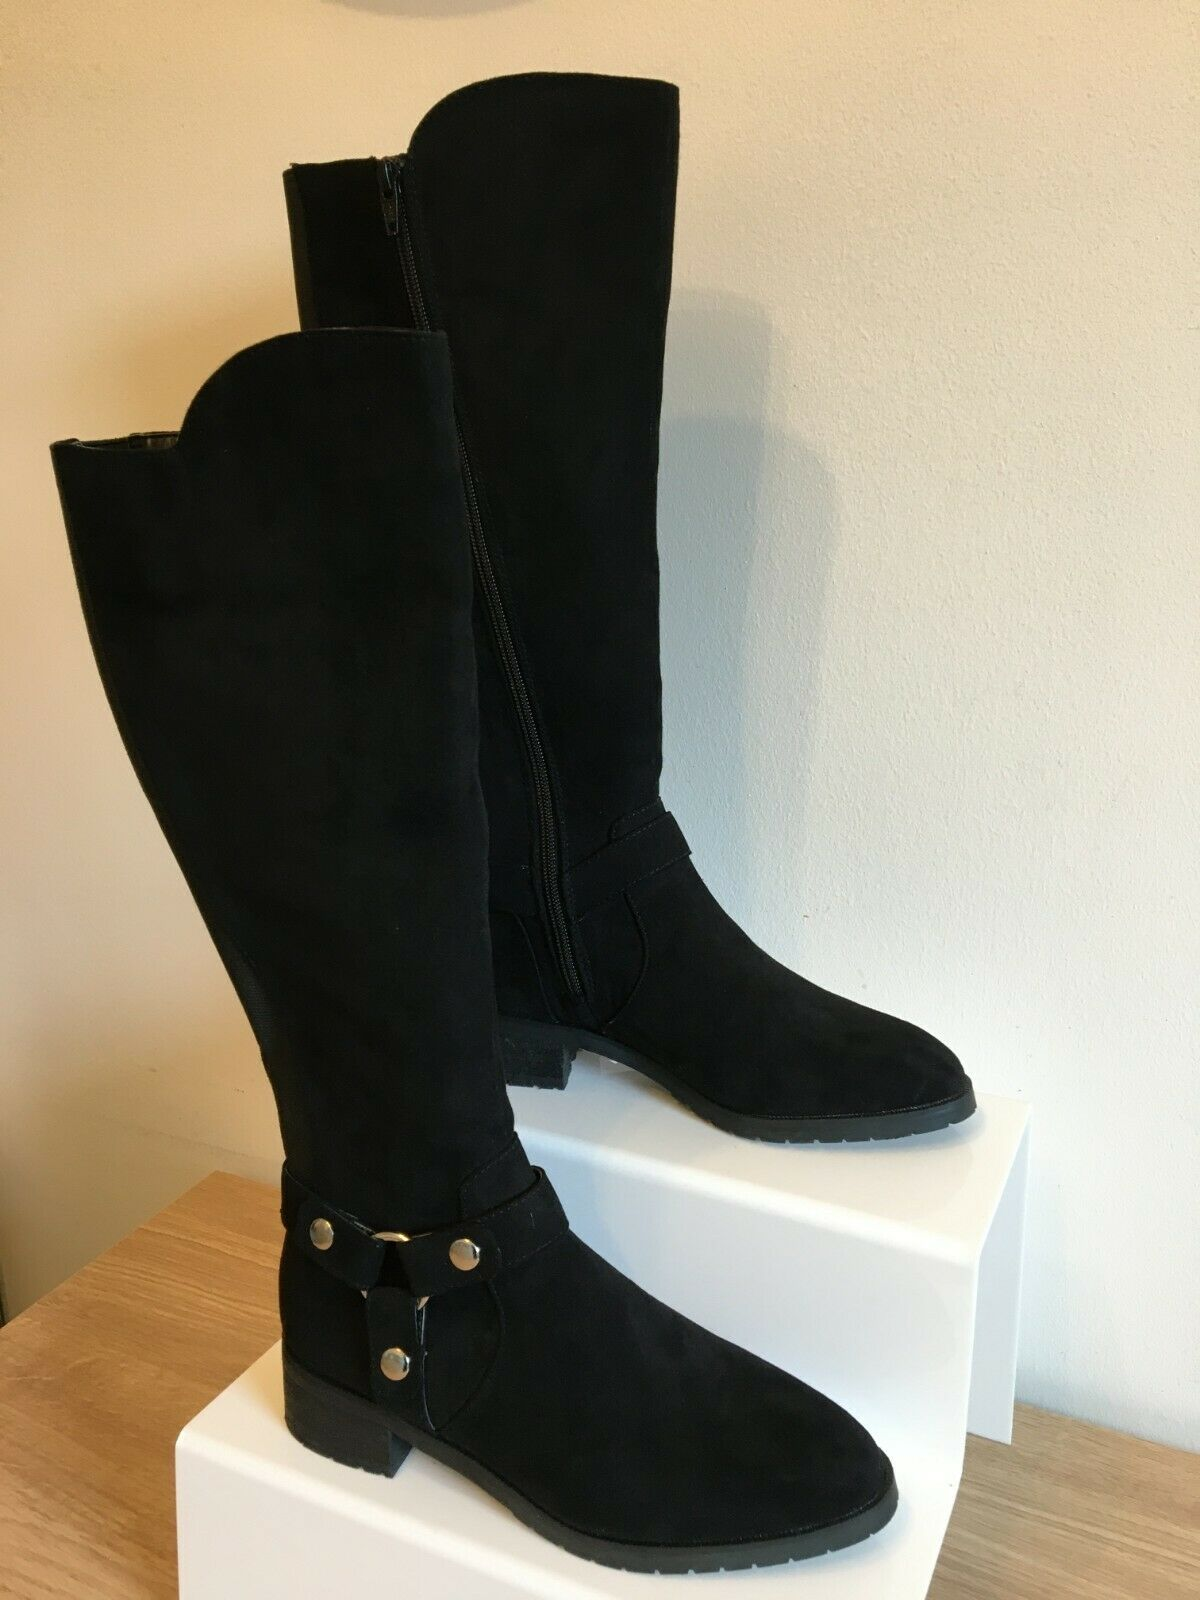 Faith Knee High Boots Black Suede Elastic Zip Up UK Size 4 Brand New